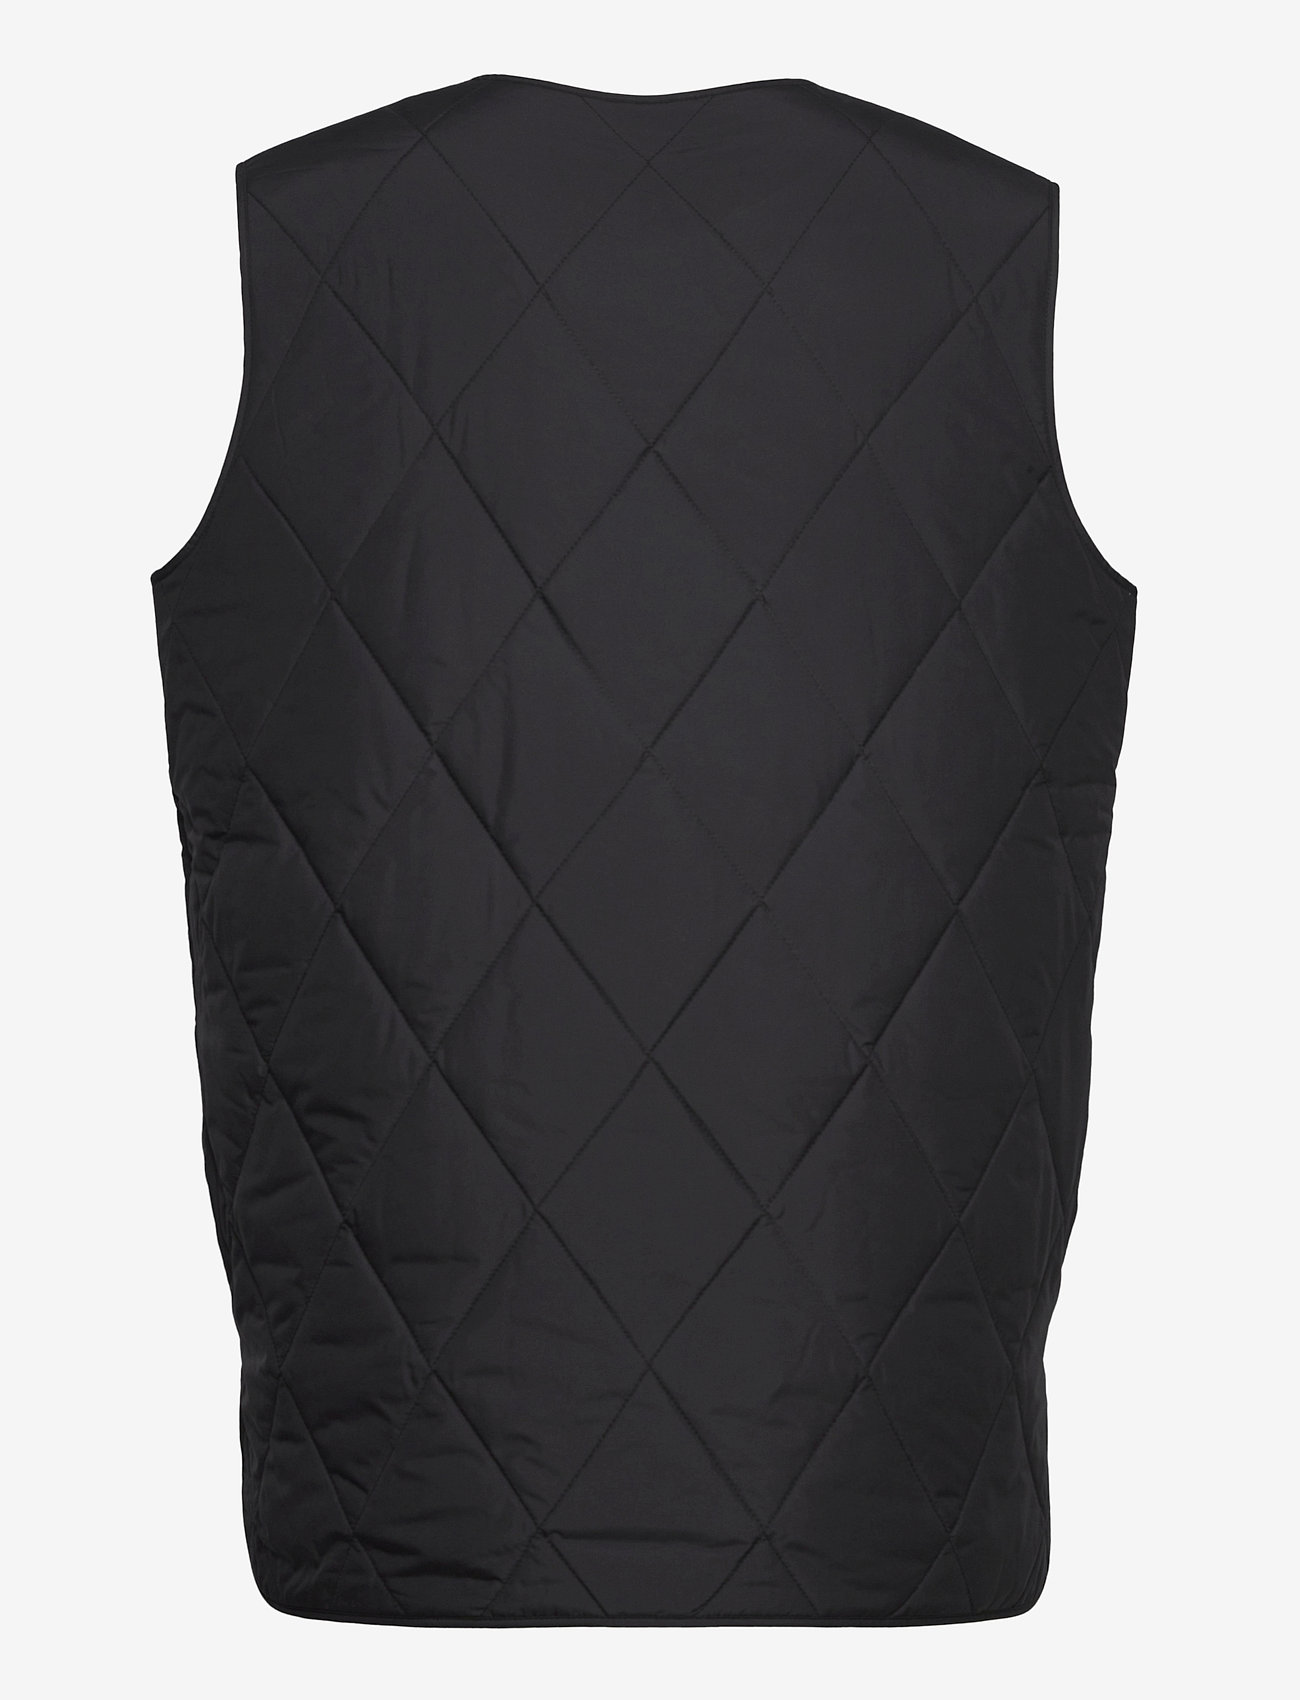 Fall Winter Spring Summer - Sealiner Vest - puffer vests - anthracite black - 1